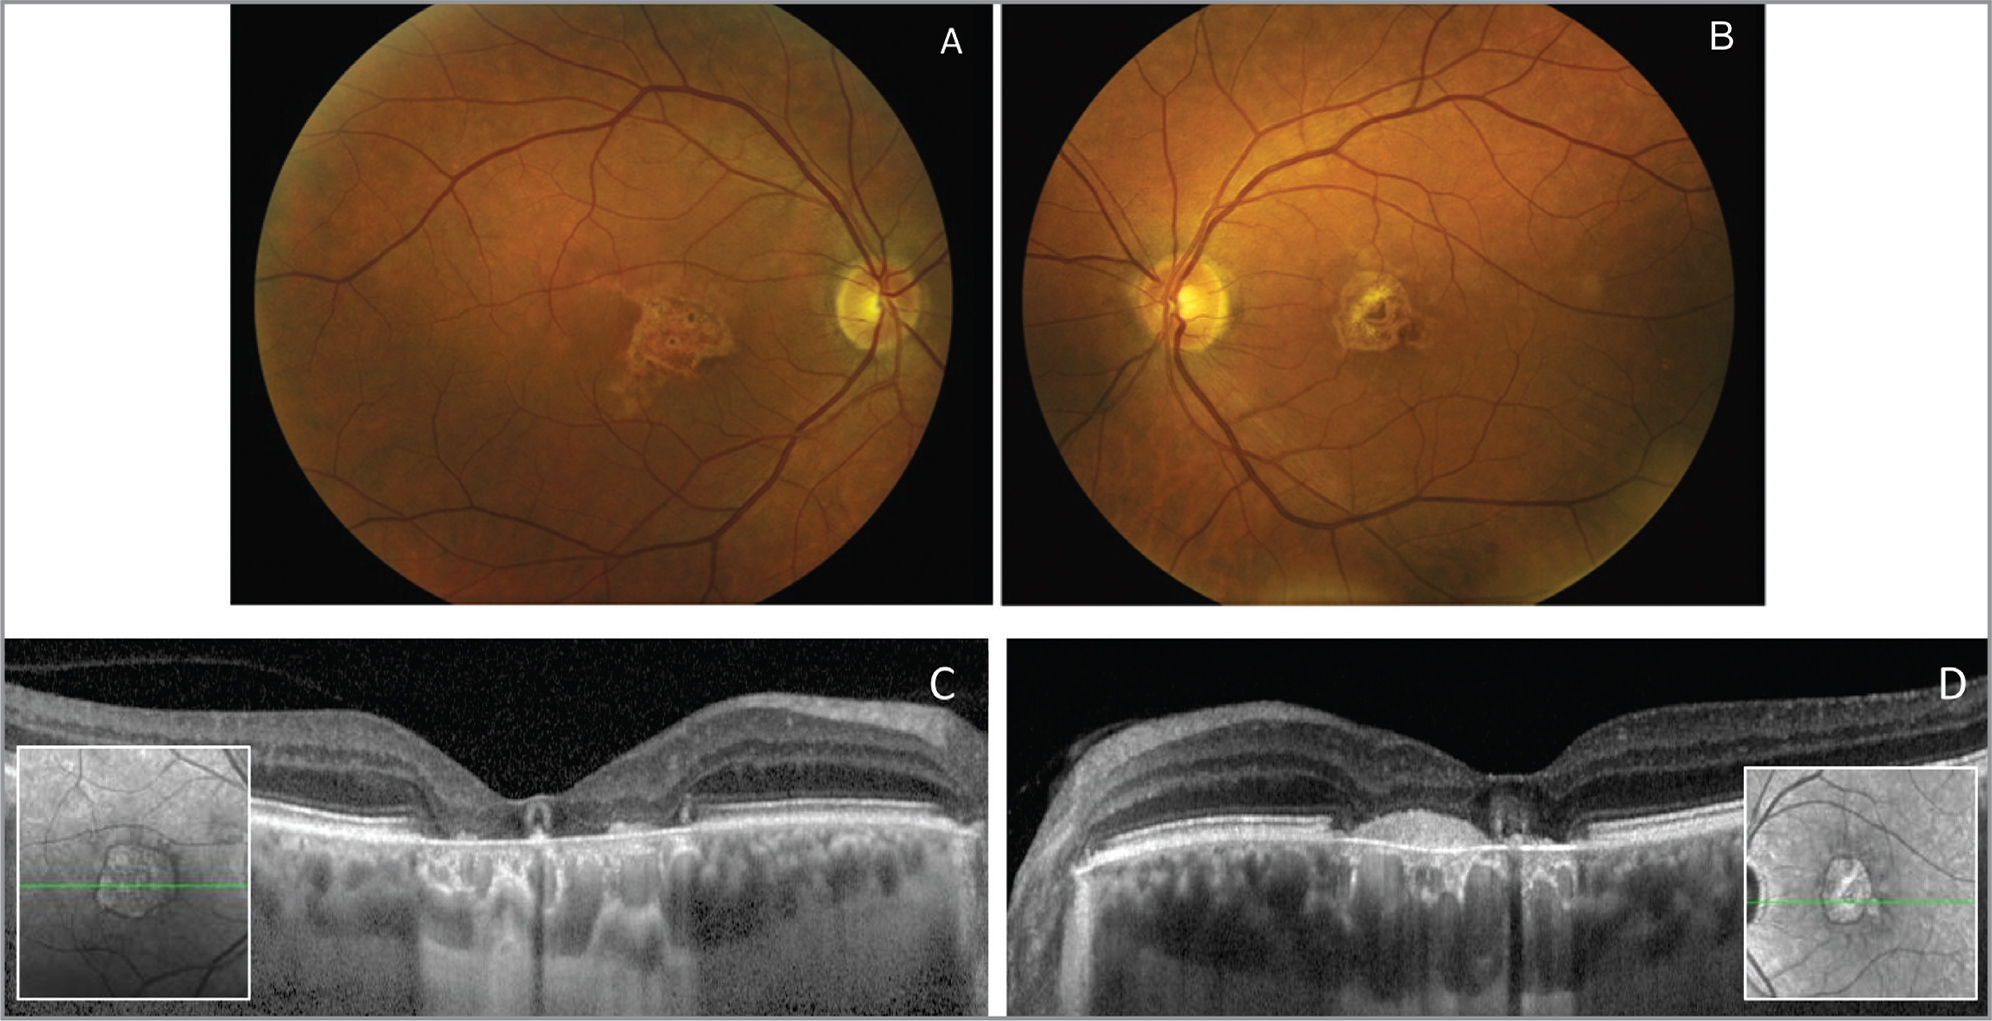 Color fundus photo (A, B) at 30 months post-presentation showing central retinal pigment epithelium (RPE) atrophy and irregular pigmentary clumping. Spectral-domain optical coherence tomography (C, D) reveals outer retinal and RPE atrophy in both eyes with loss of the ellipsoid band. There is hyperreflective material in the subretinal space in the left eye (D) more than the right eye (C). Enhanced depth imaging reveals preservation of the large choroidal vessels but choriocapillaris loss.